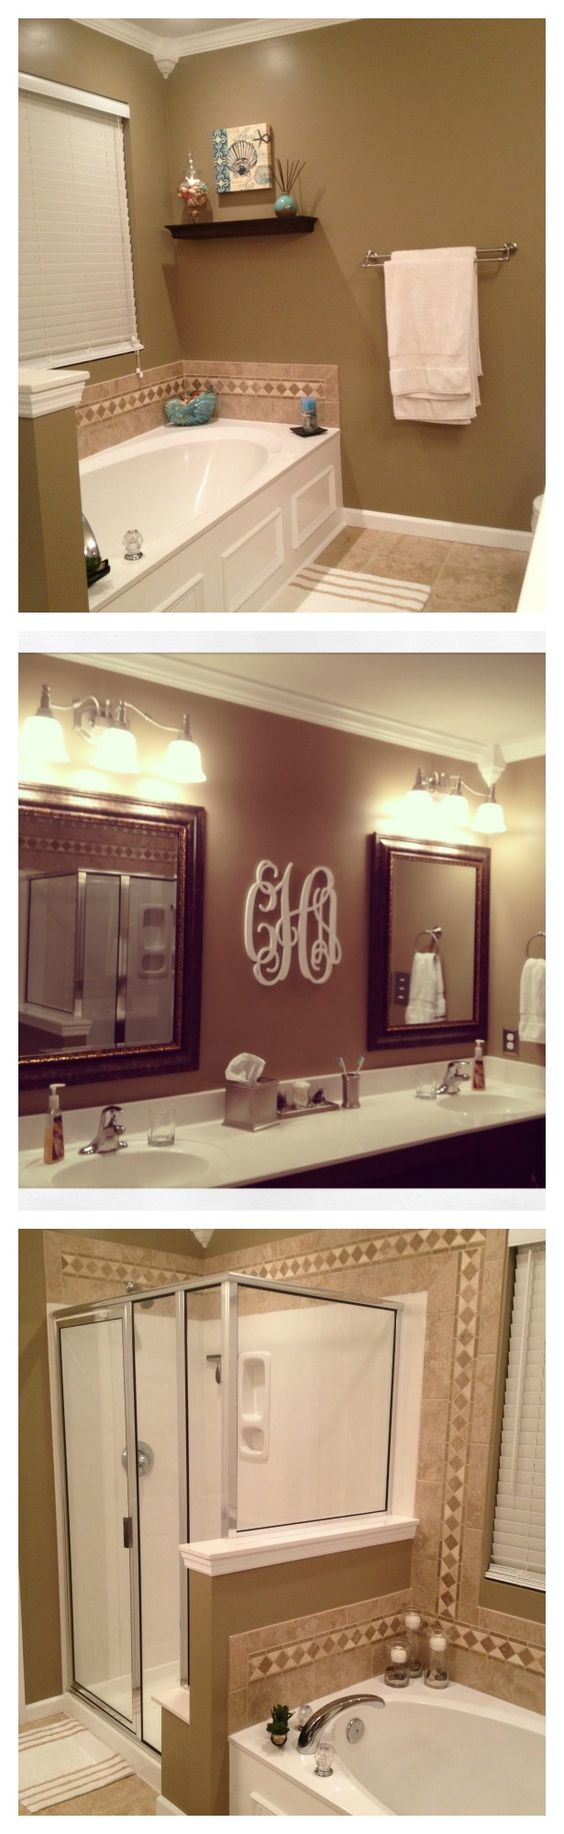 Master Bathroom Love The Monogram Home Sweet Home Pinterest Paint Tile